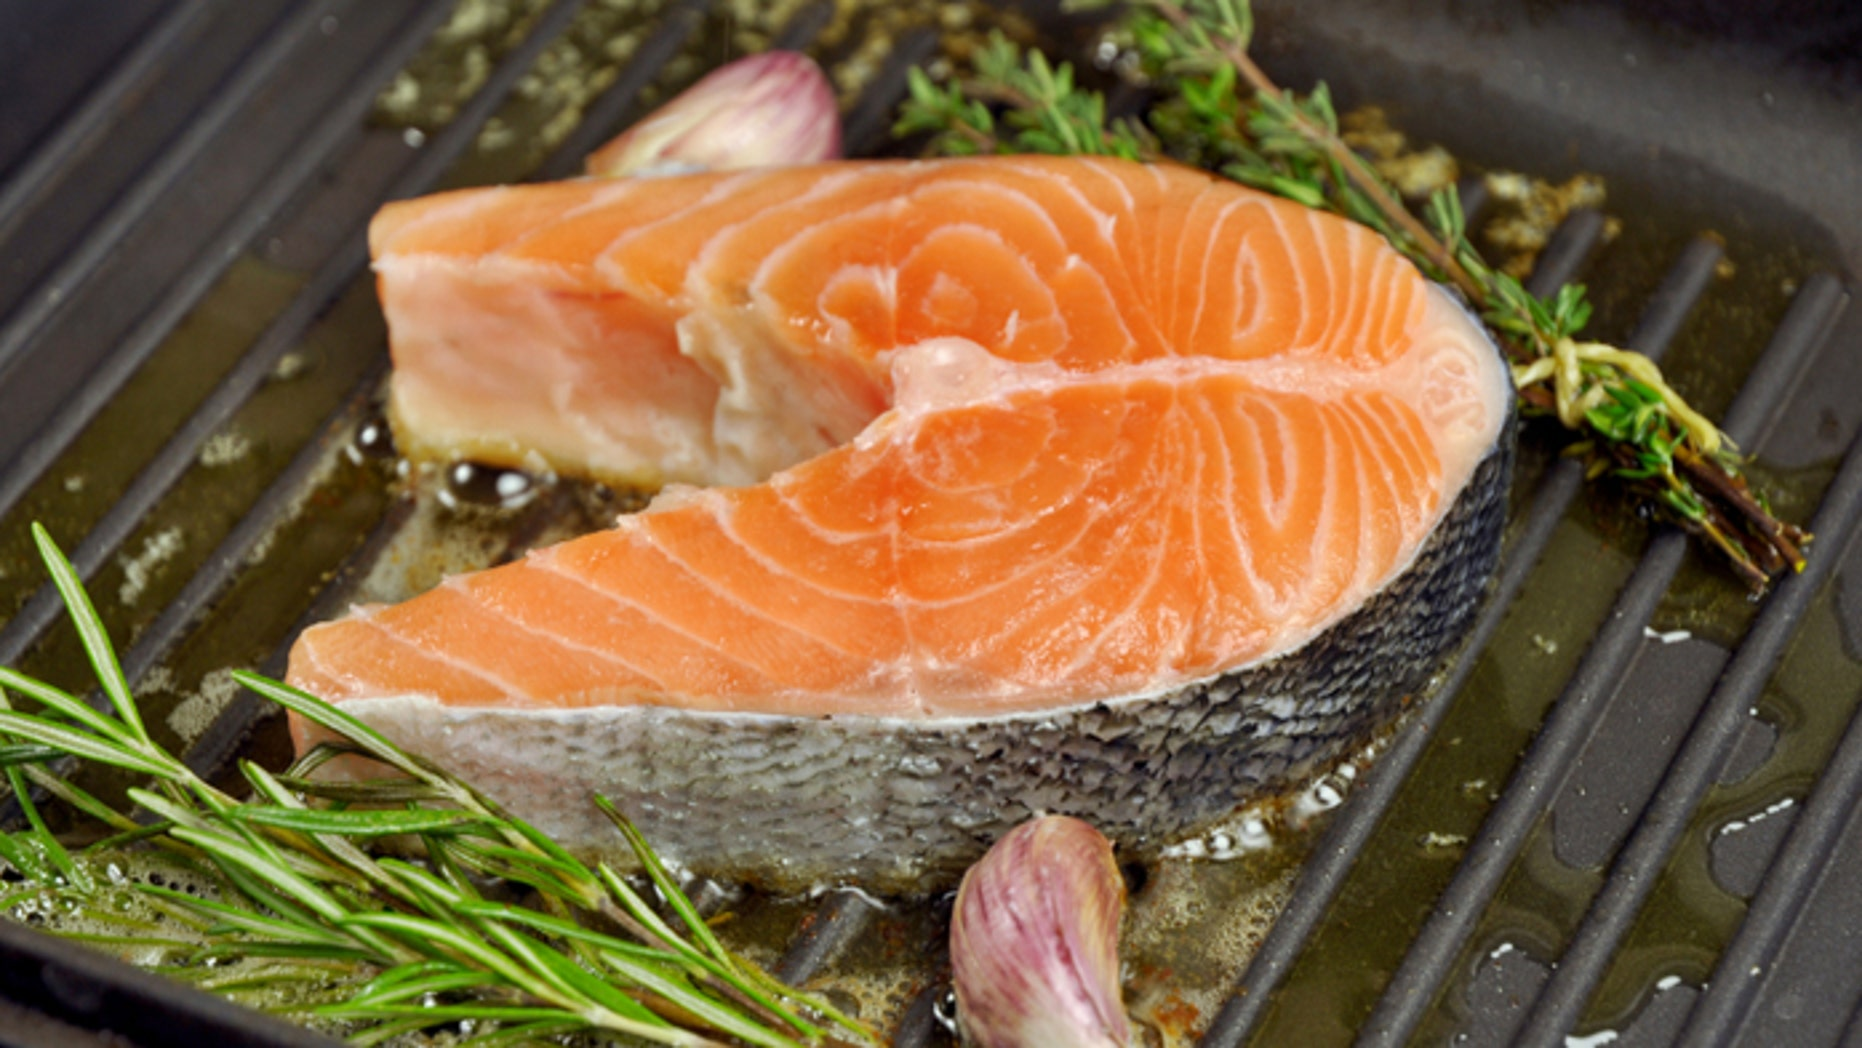 Salmon steak being fried in a pan with rosemary,thyme and garlic